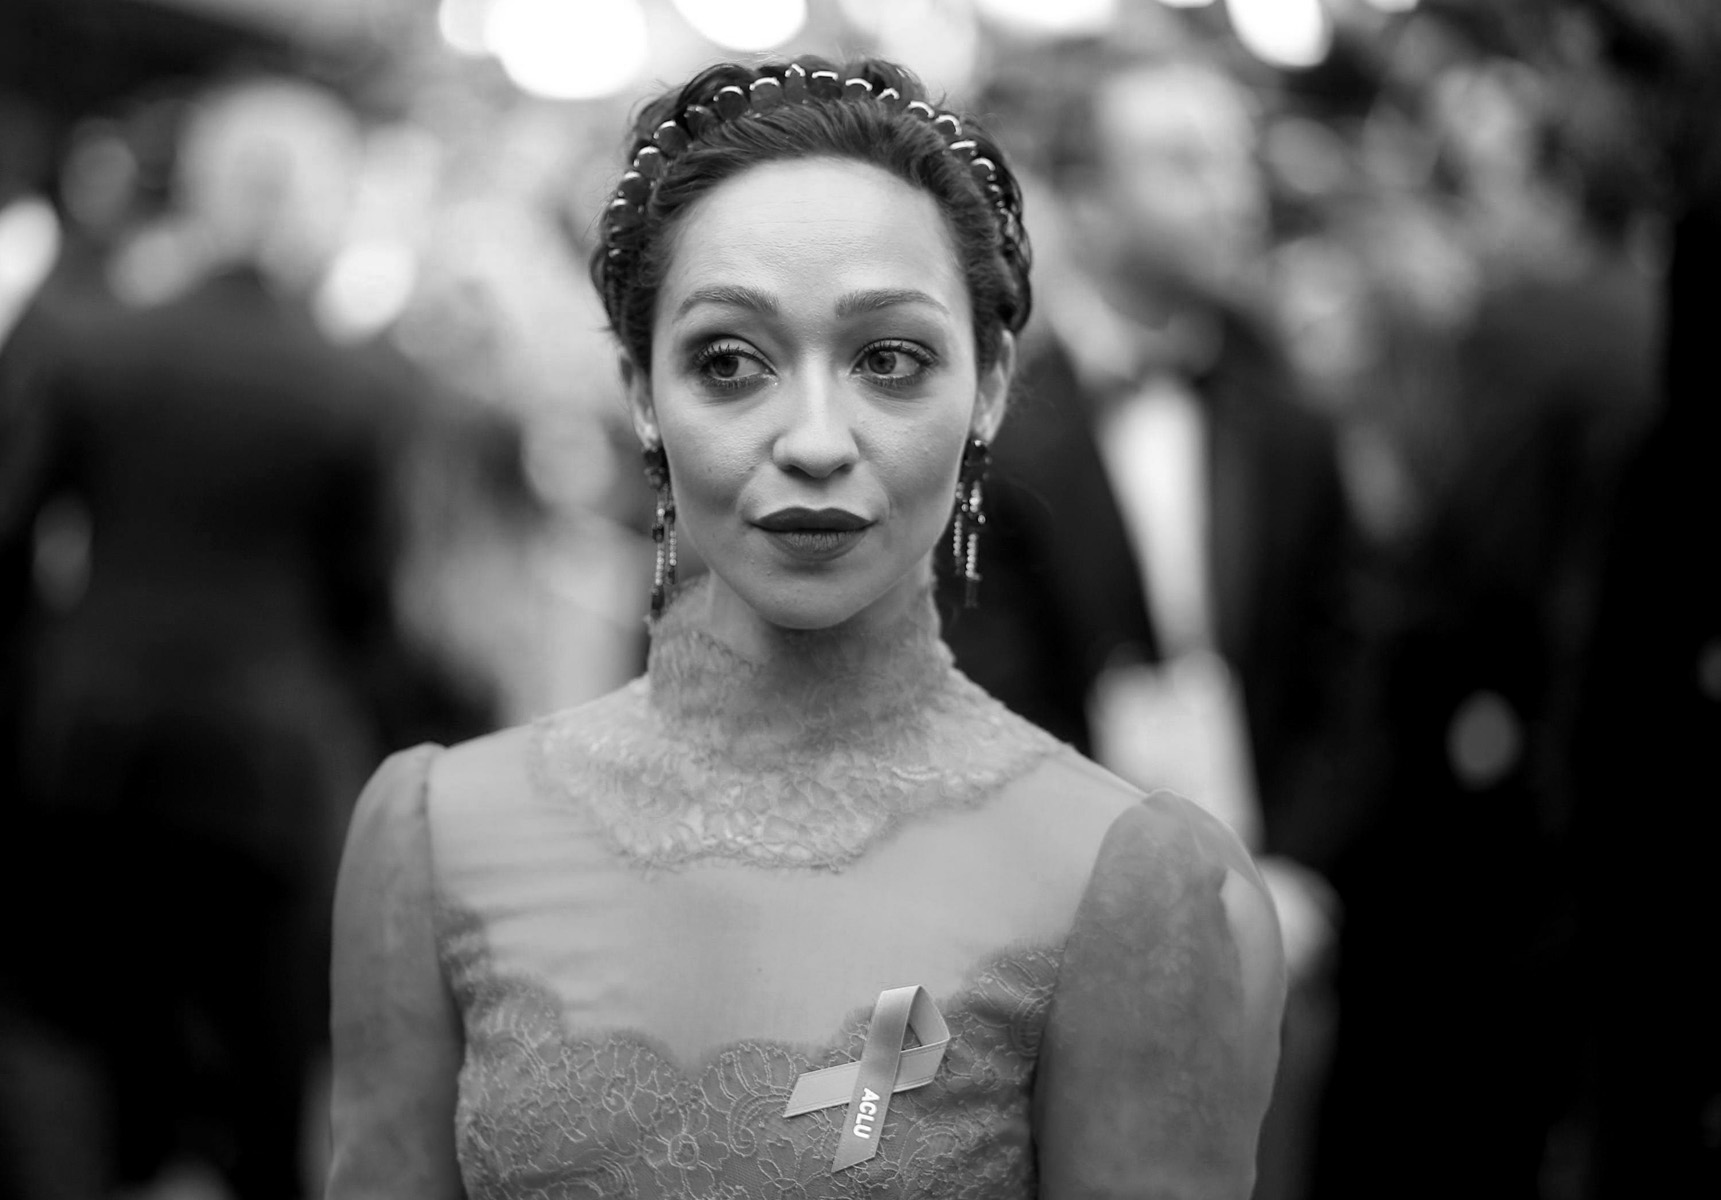 Ruth Negga arrives at the Oscars on Sunday, Feb. 26, 2017, at the Dolby Theatre in Los Angeles. (Photo by Matt Sayles/Invision/AP)